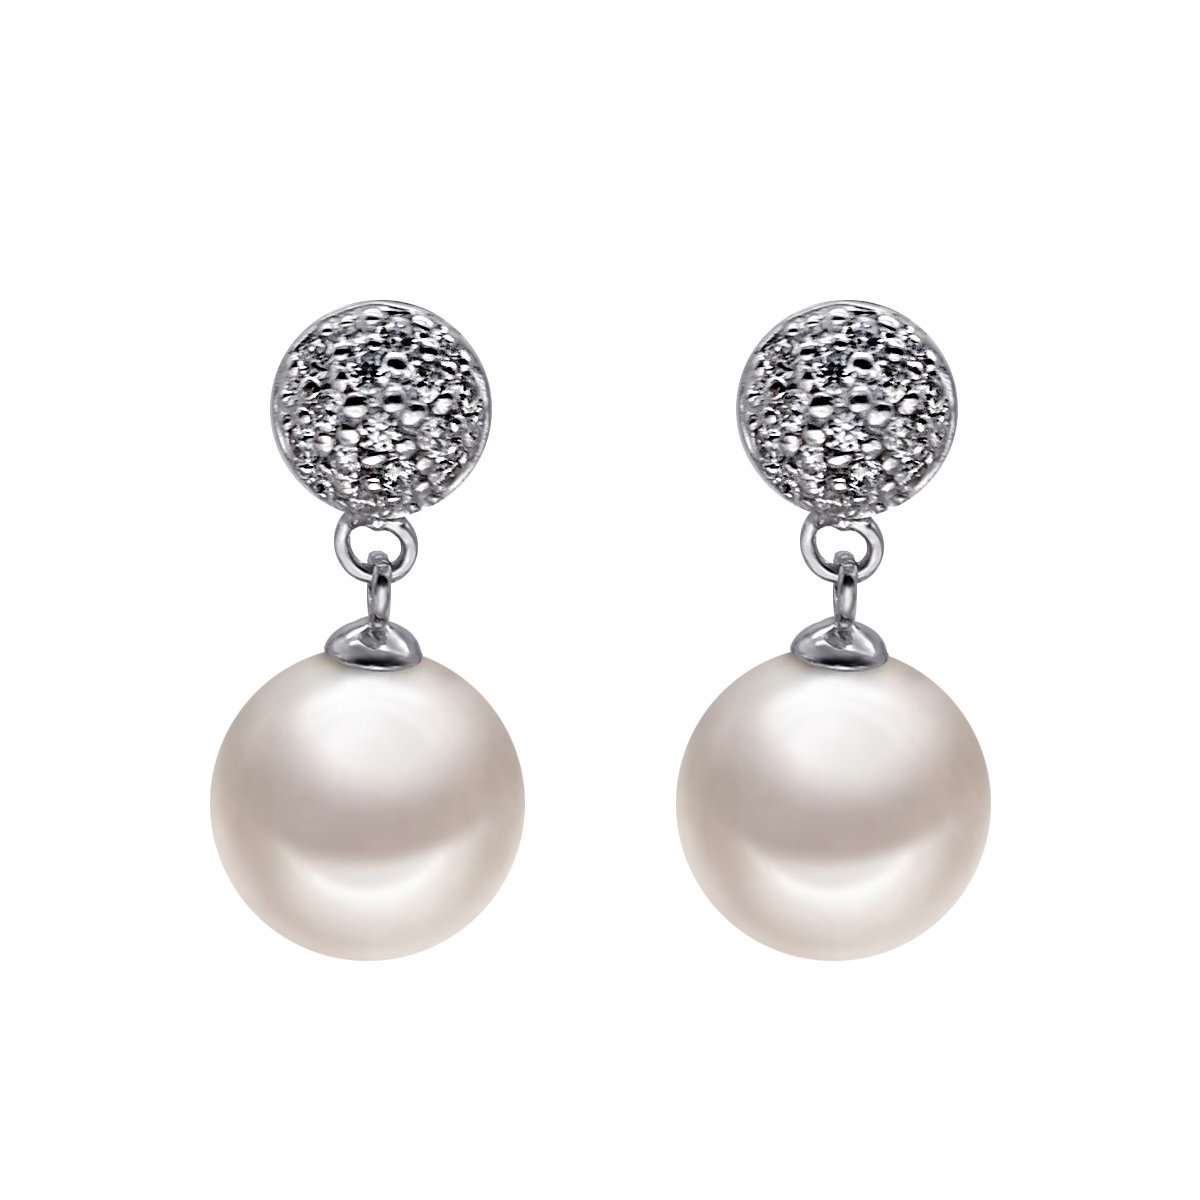 Pave Ball- 925 silver with Fresh water pearl earring